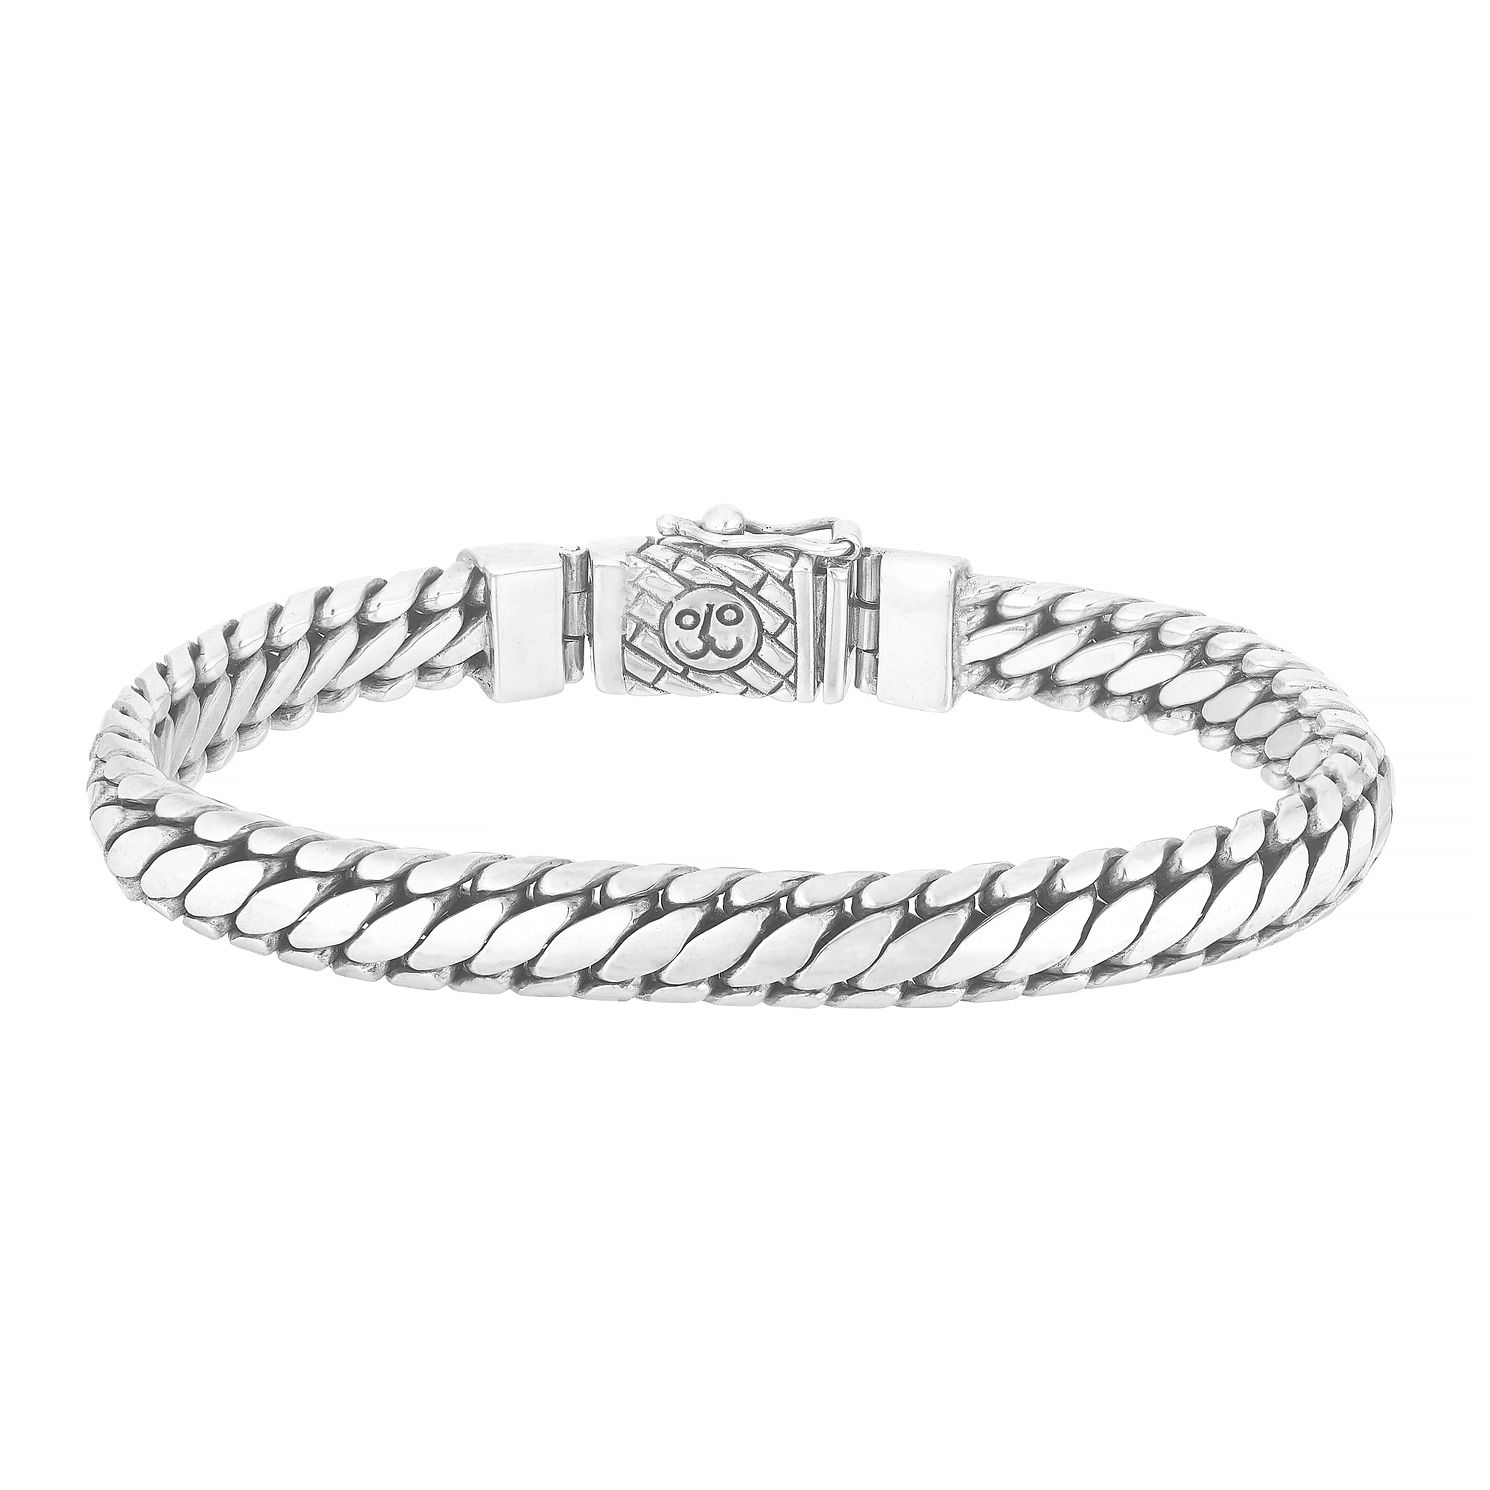 Esquire Sterling Silver Heavy Serpentine Link Bracelet - Product number 4976436